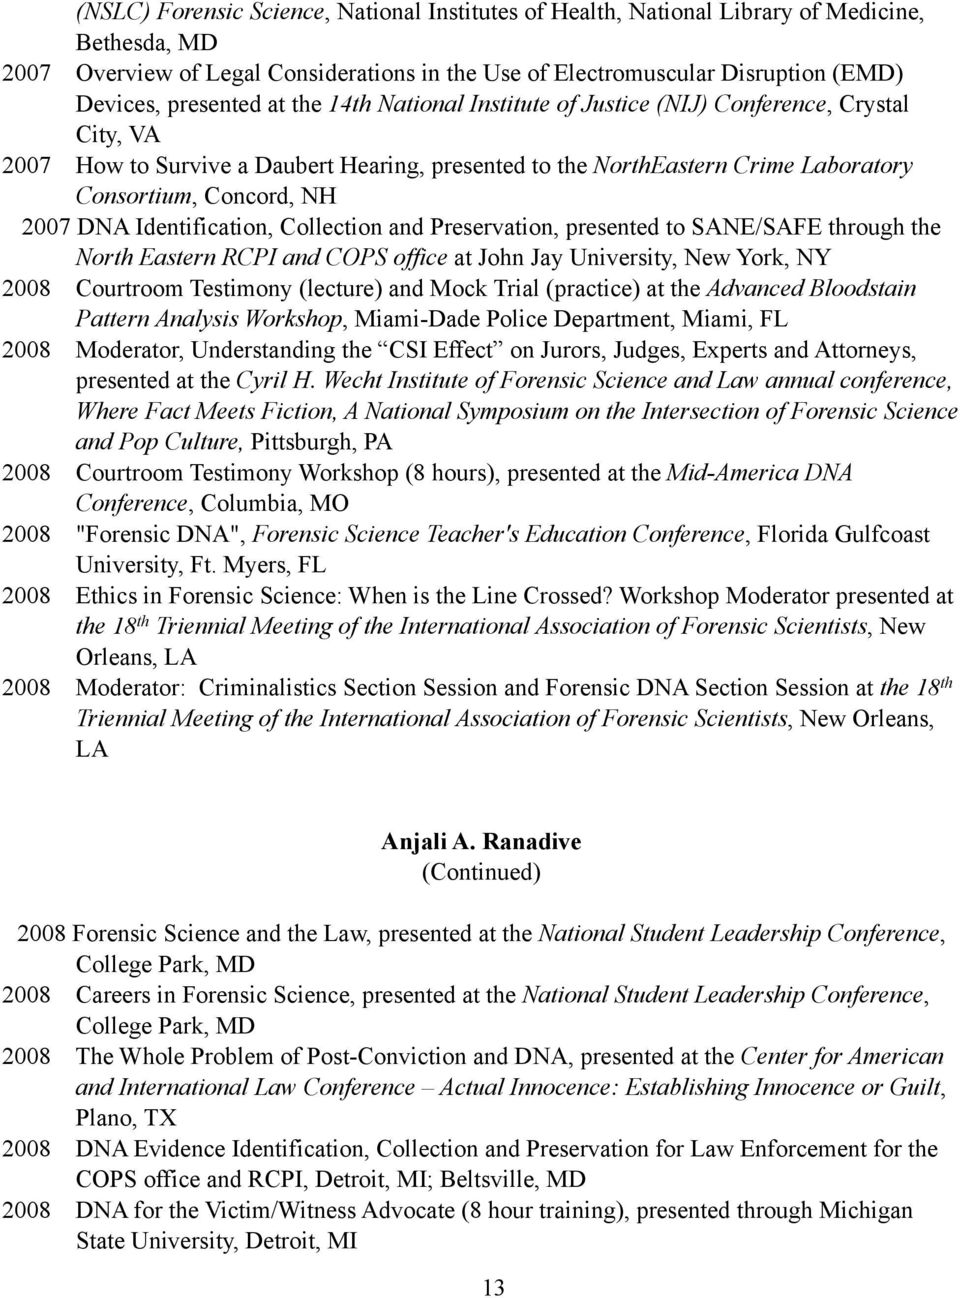 2007 DNA Identification, Collection and Preservation, presented to SANE/SAFE through the North Eastern RCPI and COPS office at John Jay University, New York, NY 2008 Courtroom Testimony (lecture) and